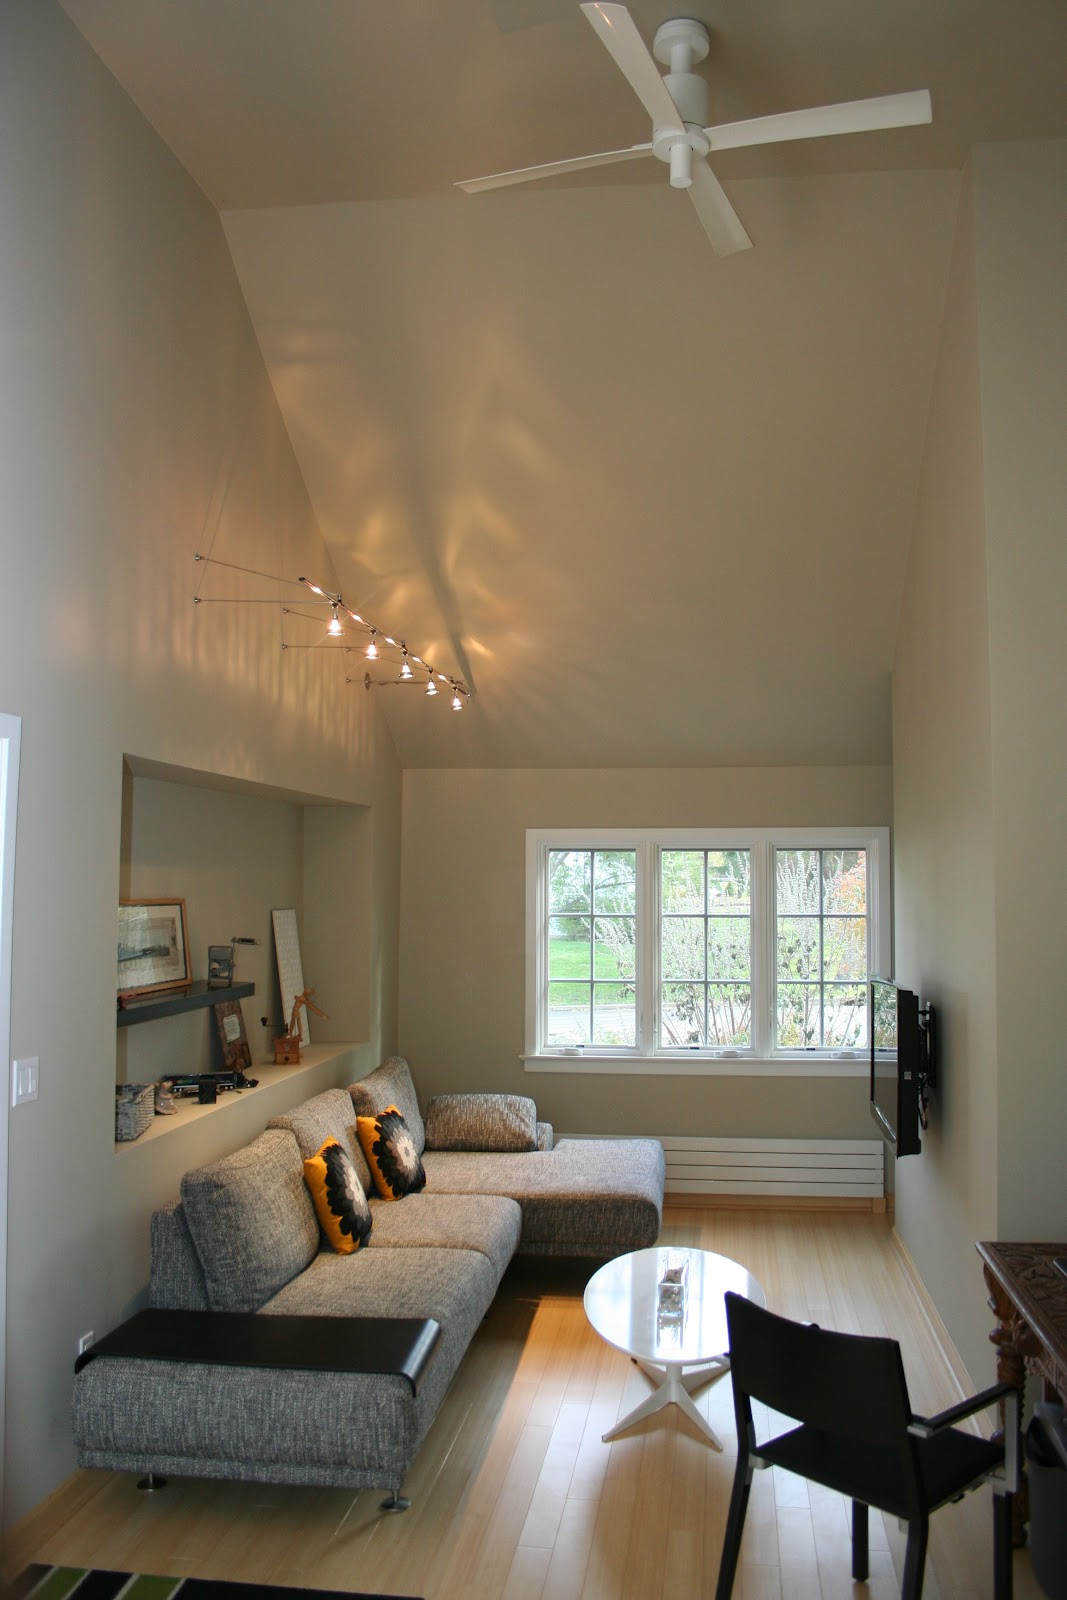 AE Constructions Blog The Design is in the Details Small Changes for Major Home Improvements